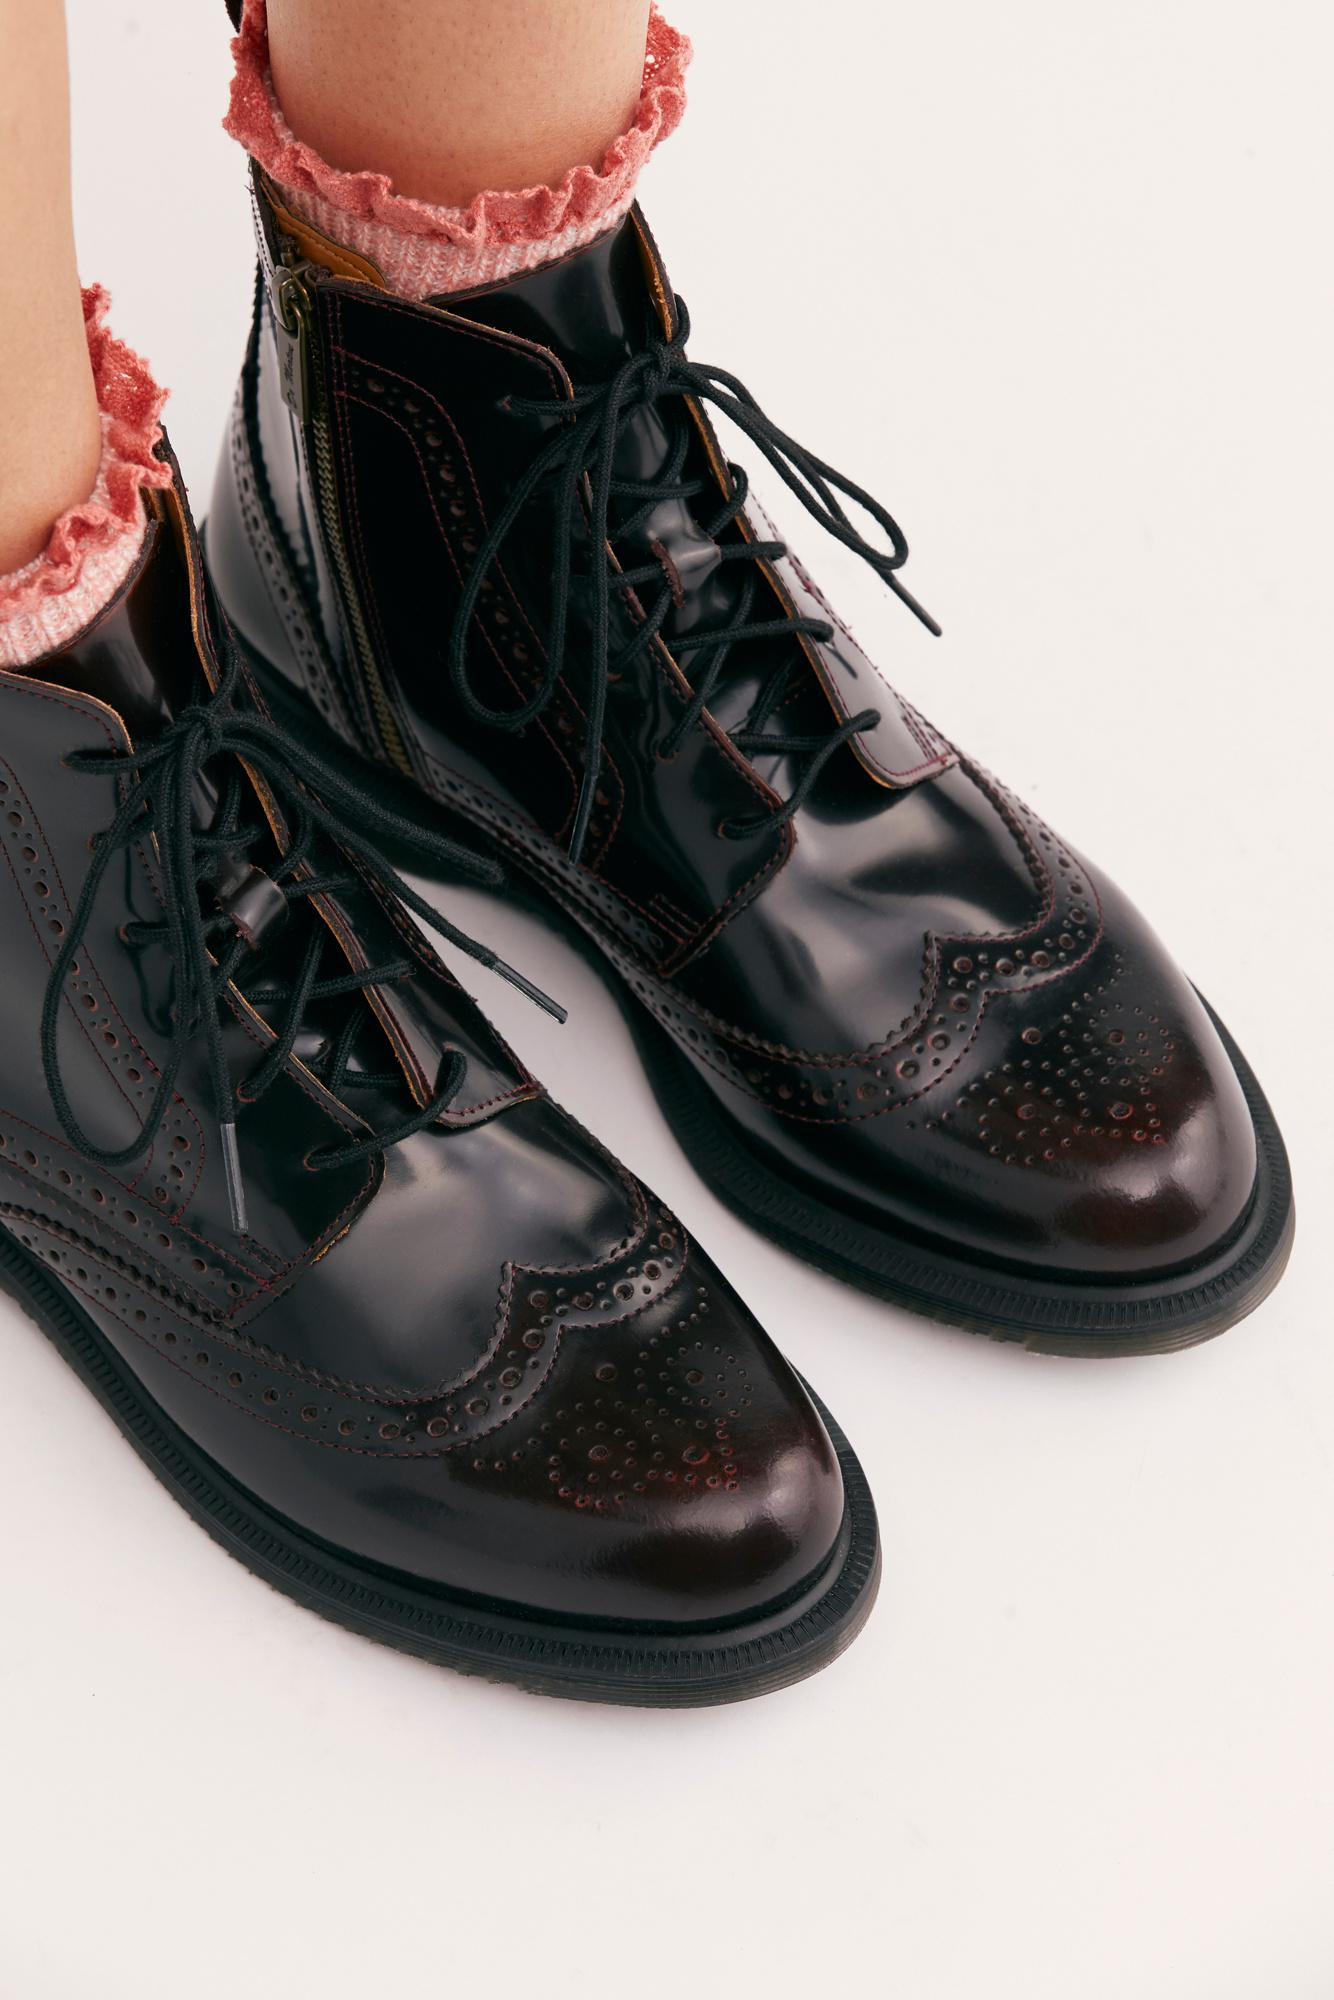 578b085008a Free People Red Dr. Martens Delphine 8 Eye Brogue Boot